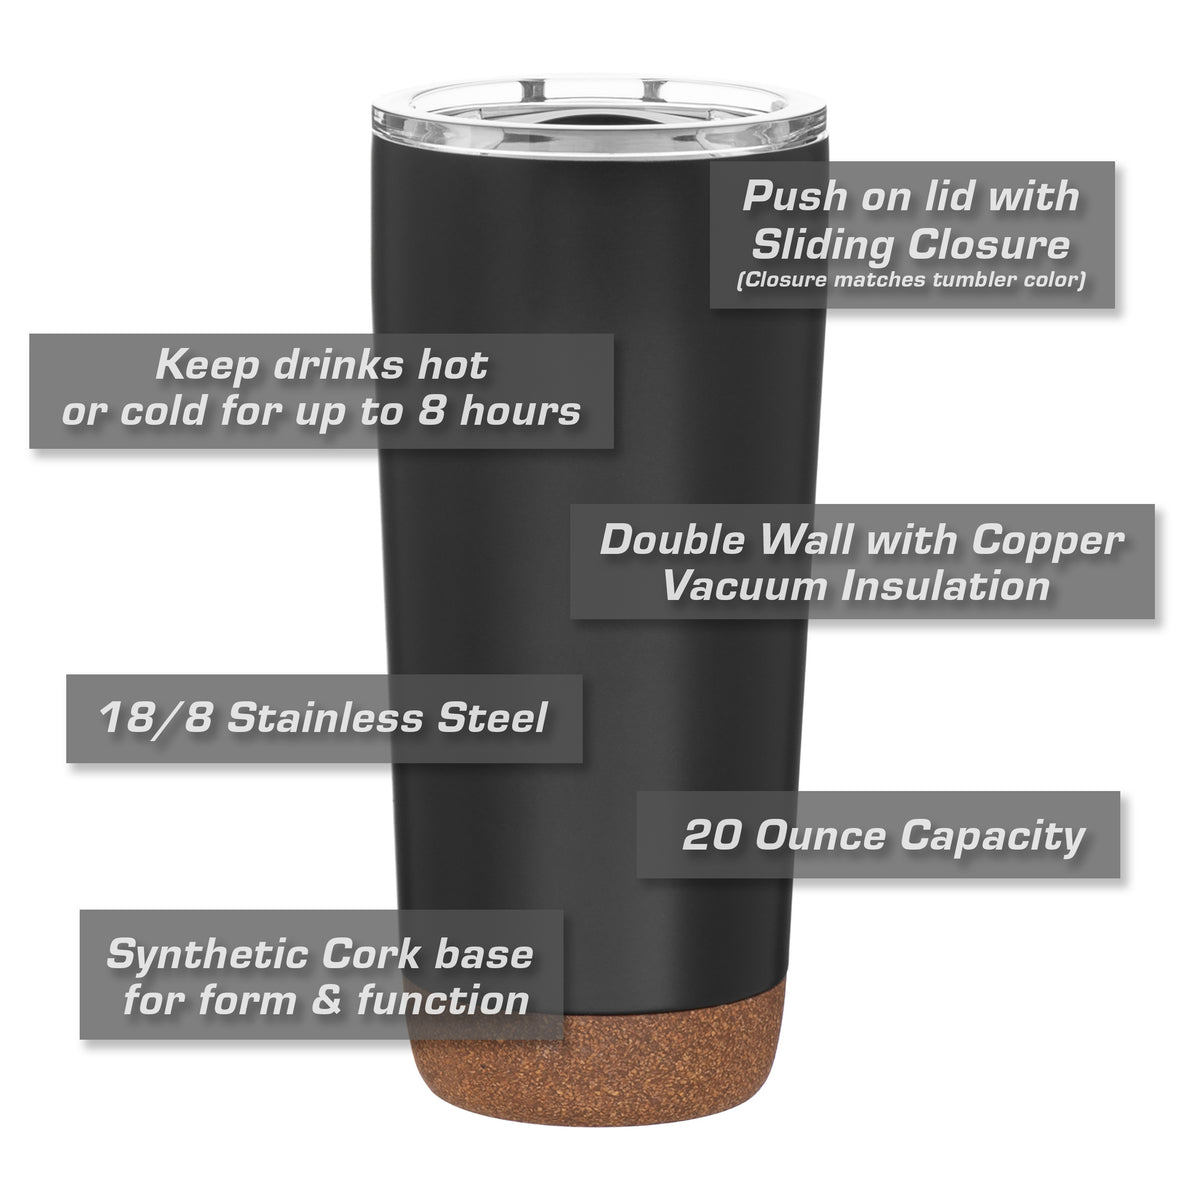 Porsche 911 993 GT2 Insulated Stainless Steel Coffee Tumbler - 20 oz